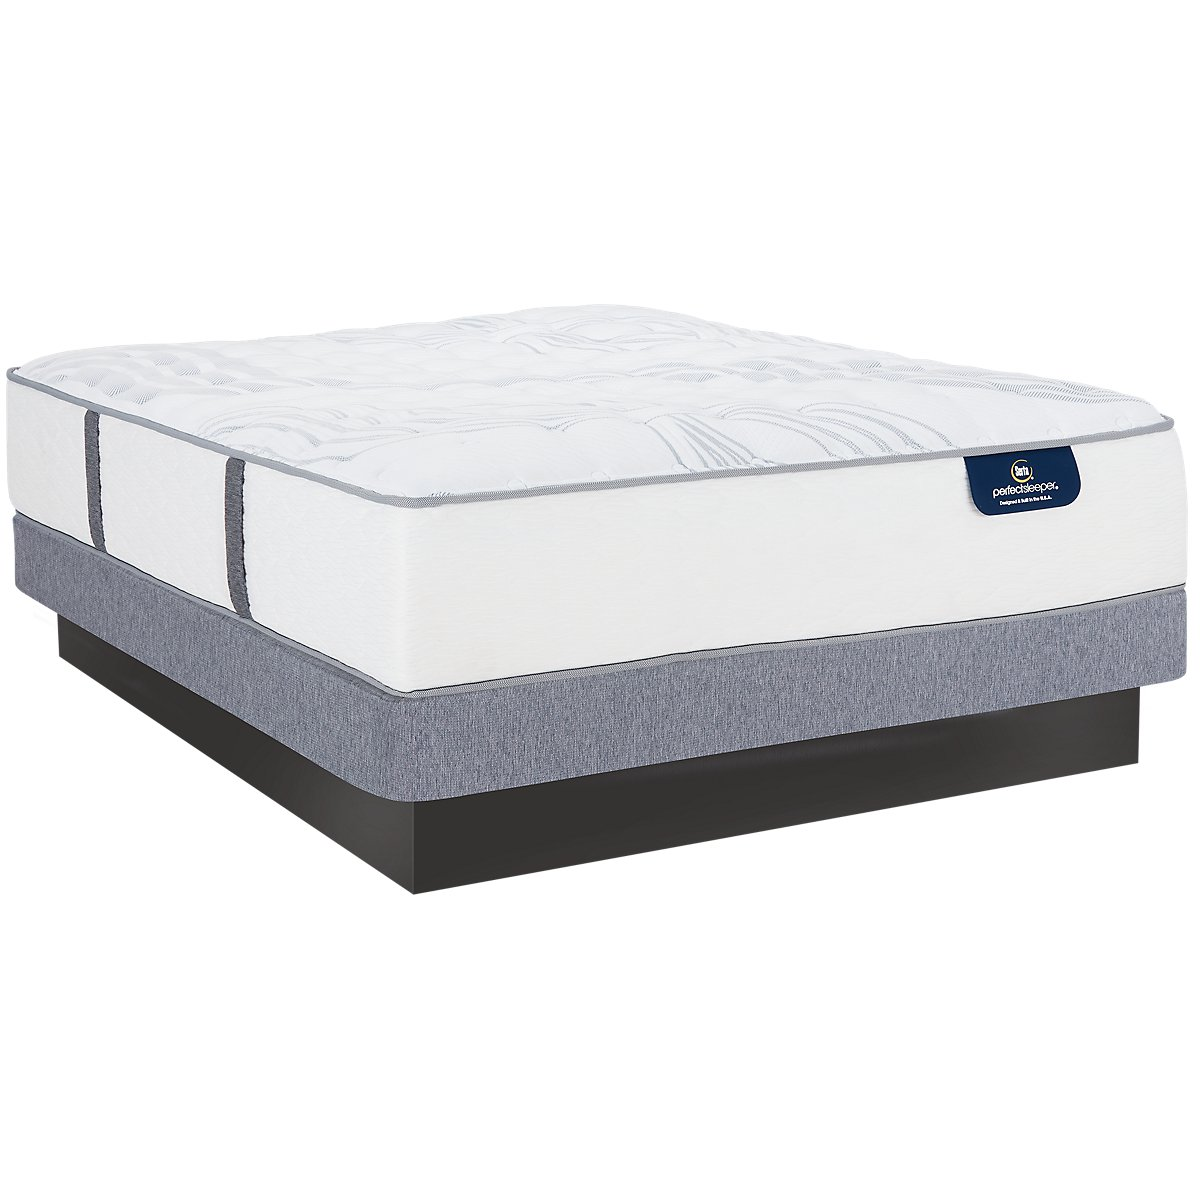 Serta Perfect Sleeper Ridgley Luxury Firm Low-Profile Mattress Set